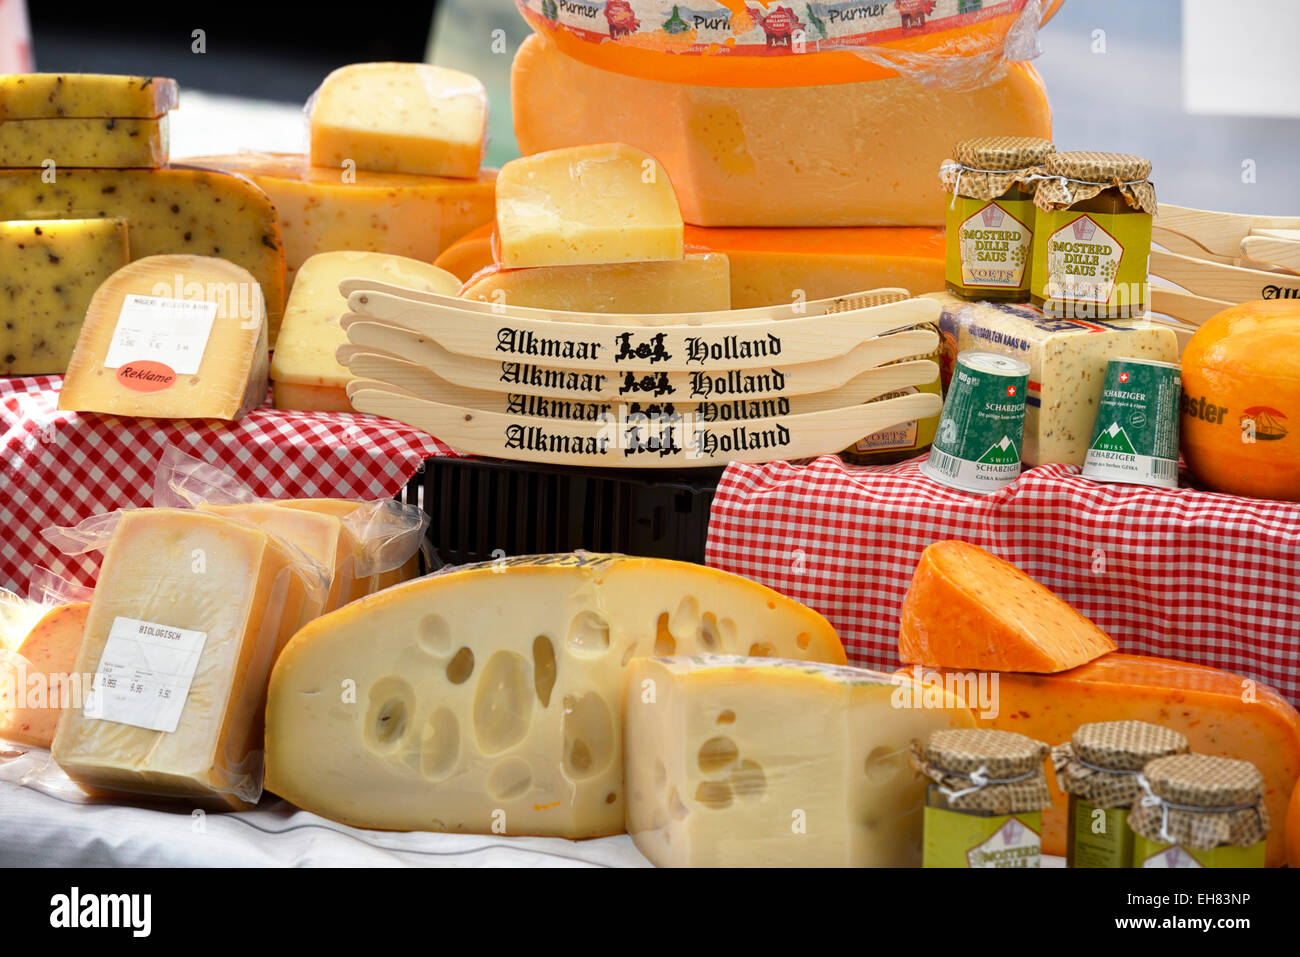 Dutch cheese on a market stall, Marktstraat, Alkmaar, North Holland, Netherlands, Europe Stock Photo